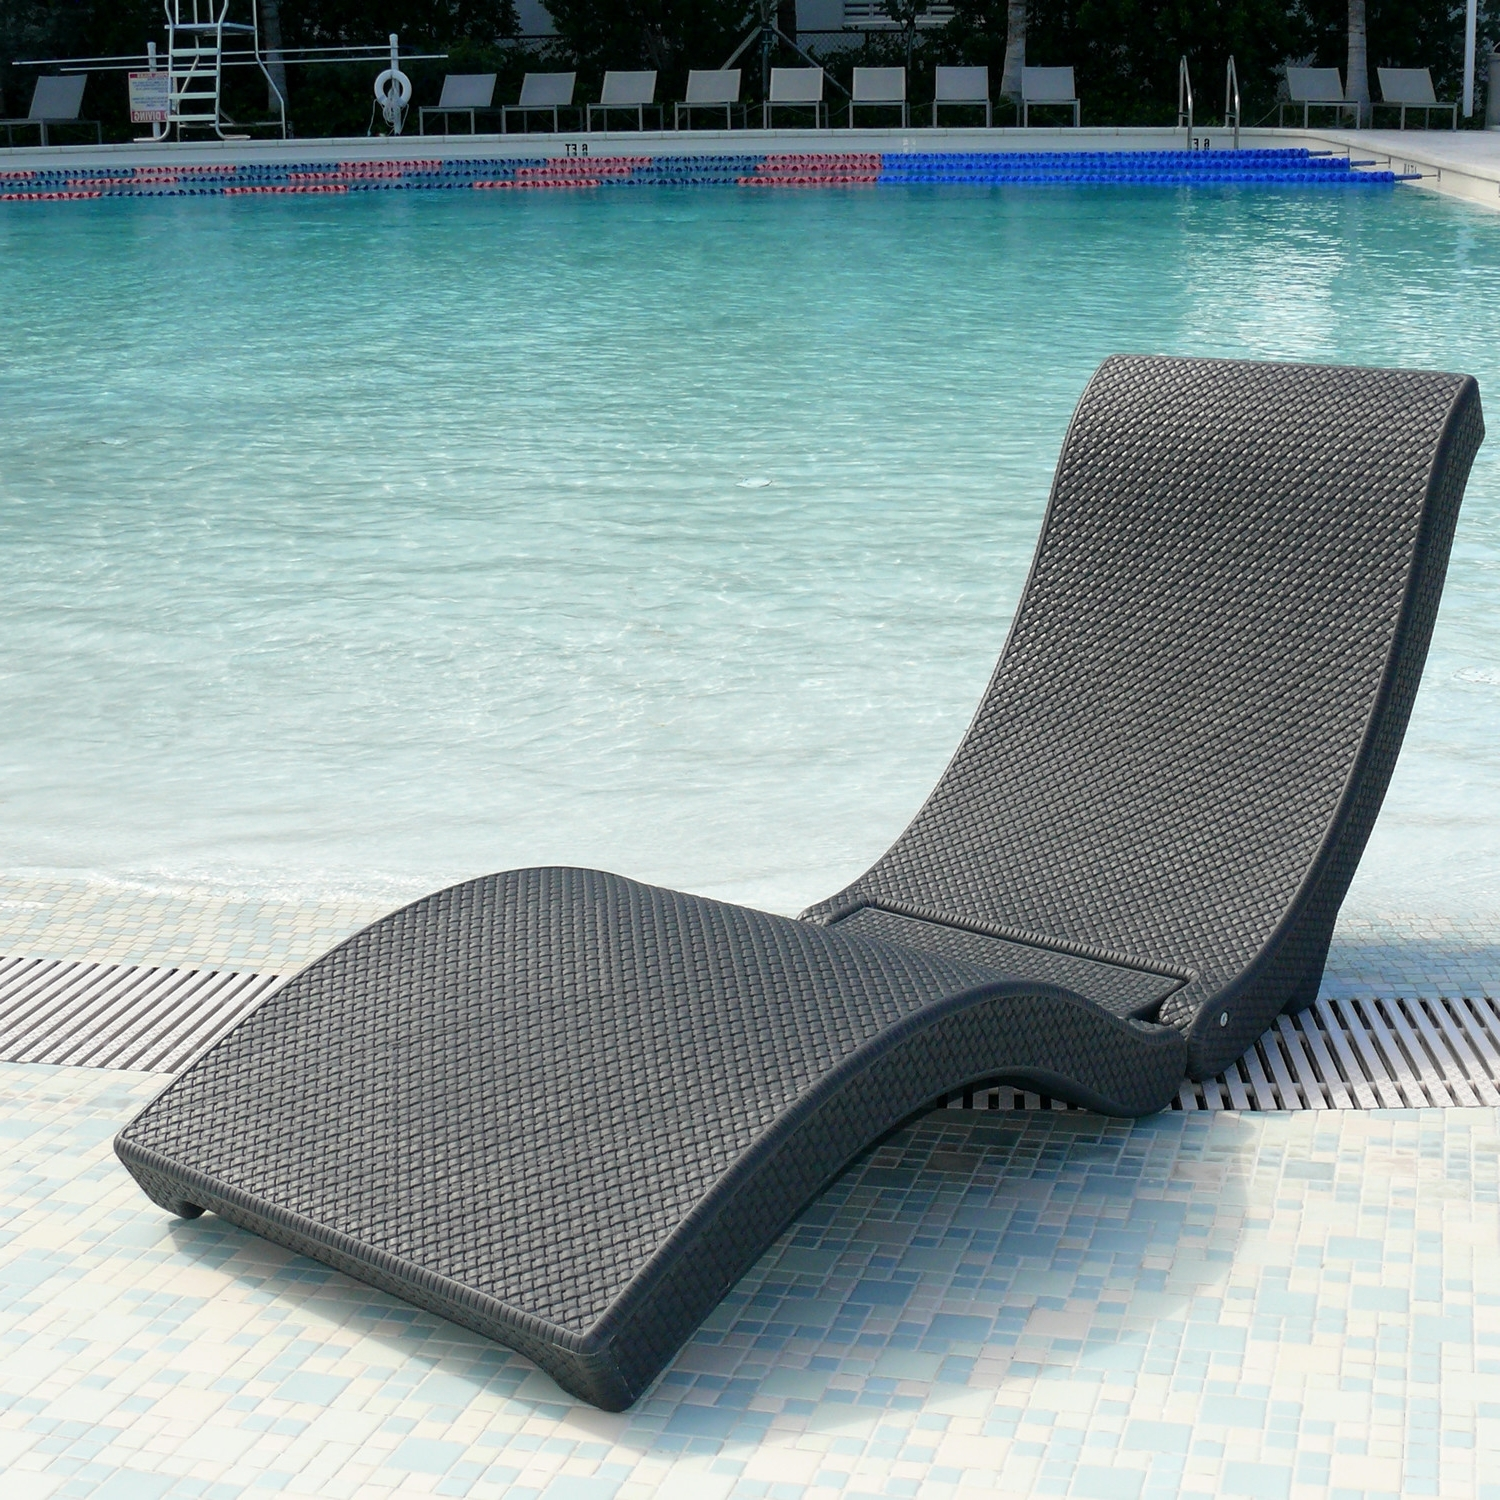 Pinterest For Current Hotel Pool Chaise Lounge Chairs (View 9 of 15)